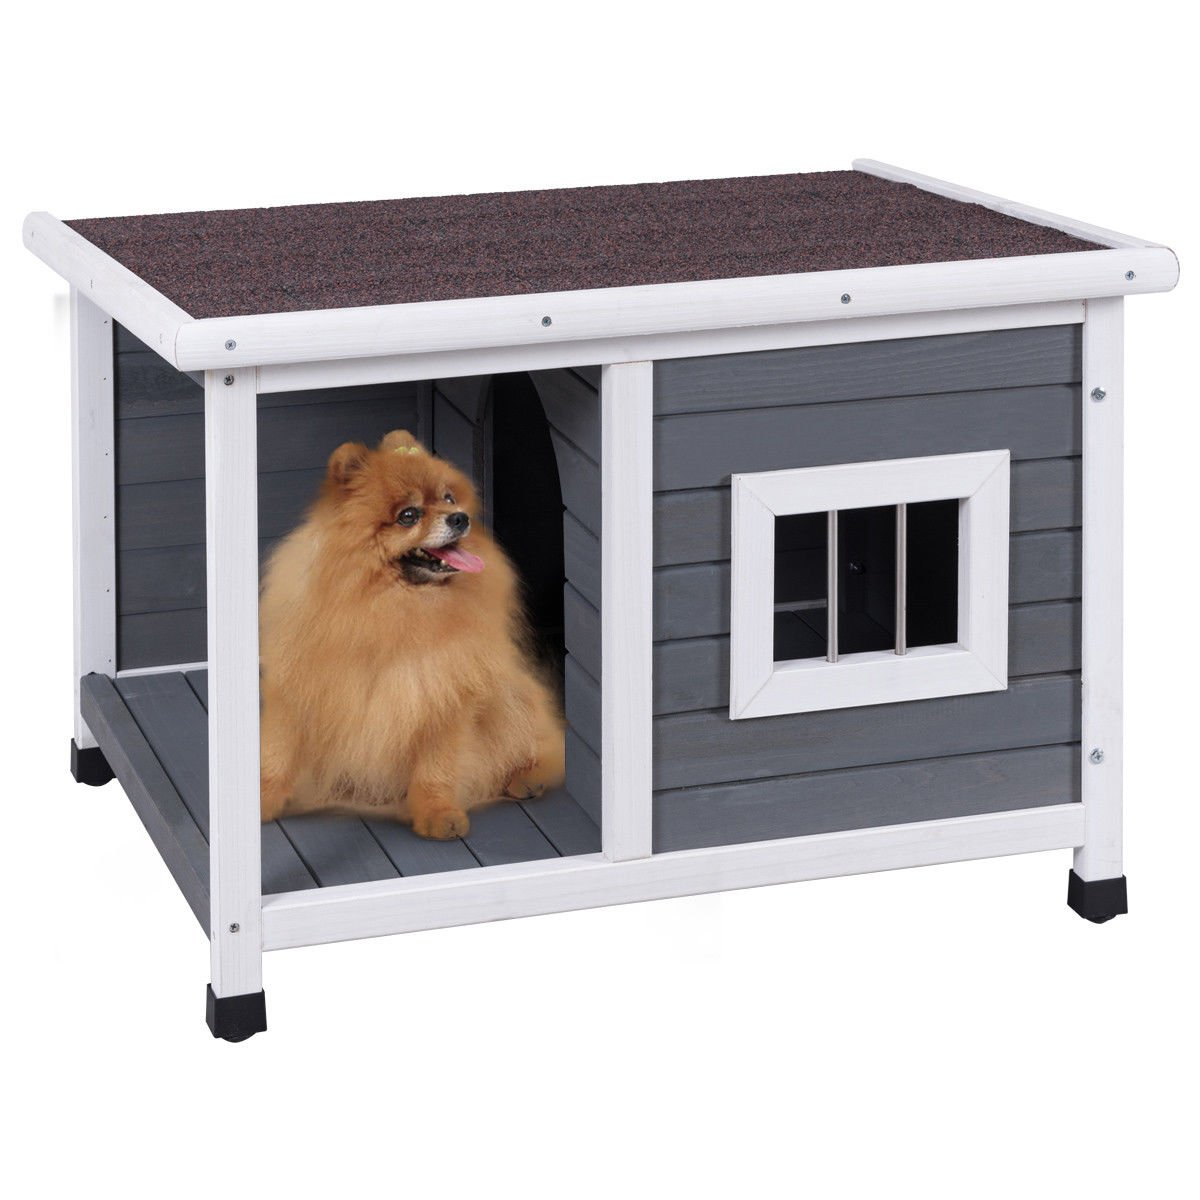 Tangkula Dog House Wooden Weatherproof Outdoor Indoor Cat Puppy Pet Bed Platform Log Cabin